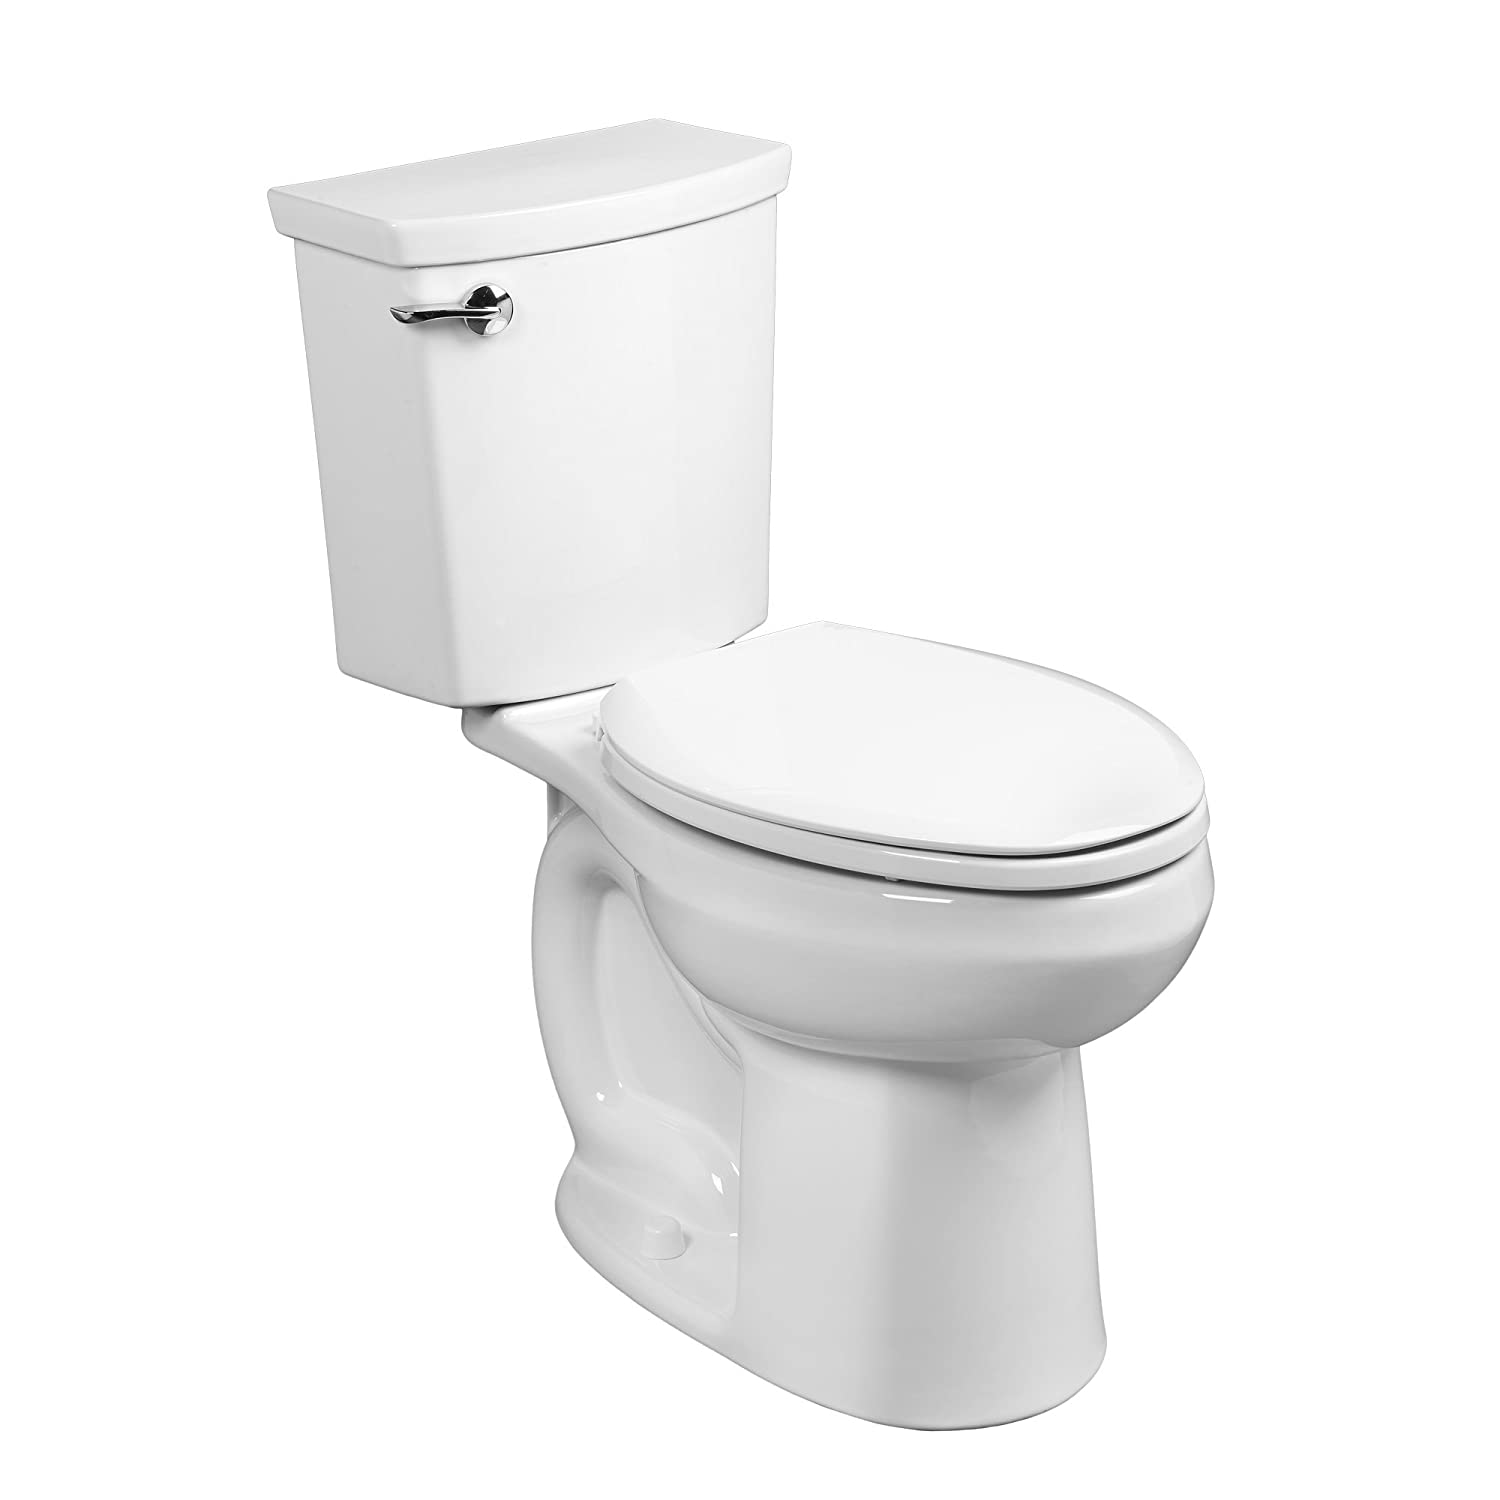 Top 5 Best American Standard Toilets Reviews in 2020 3